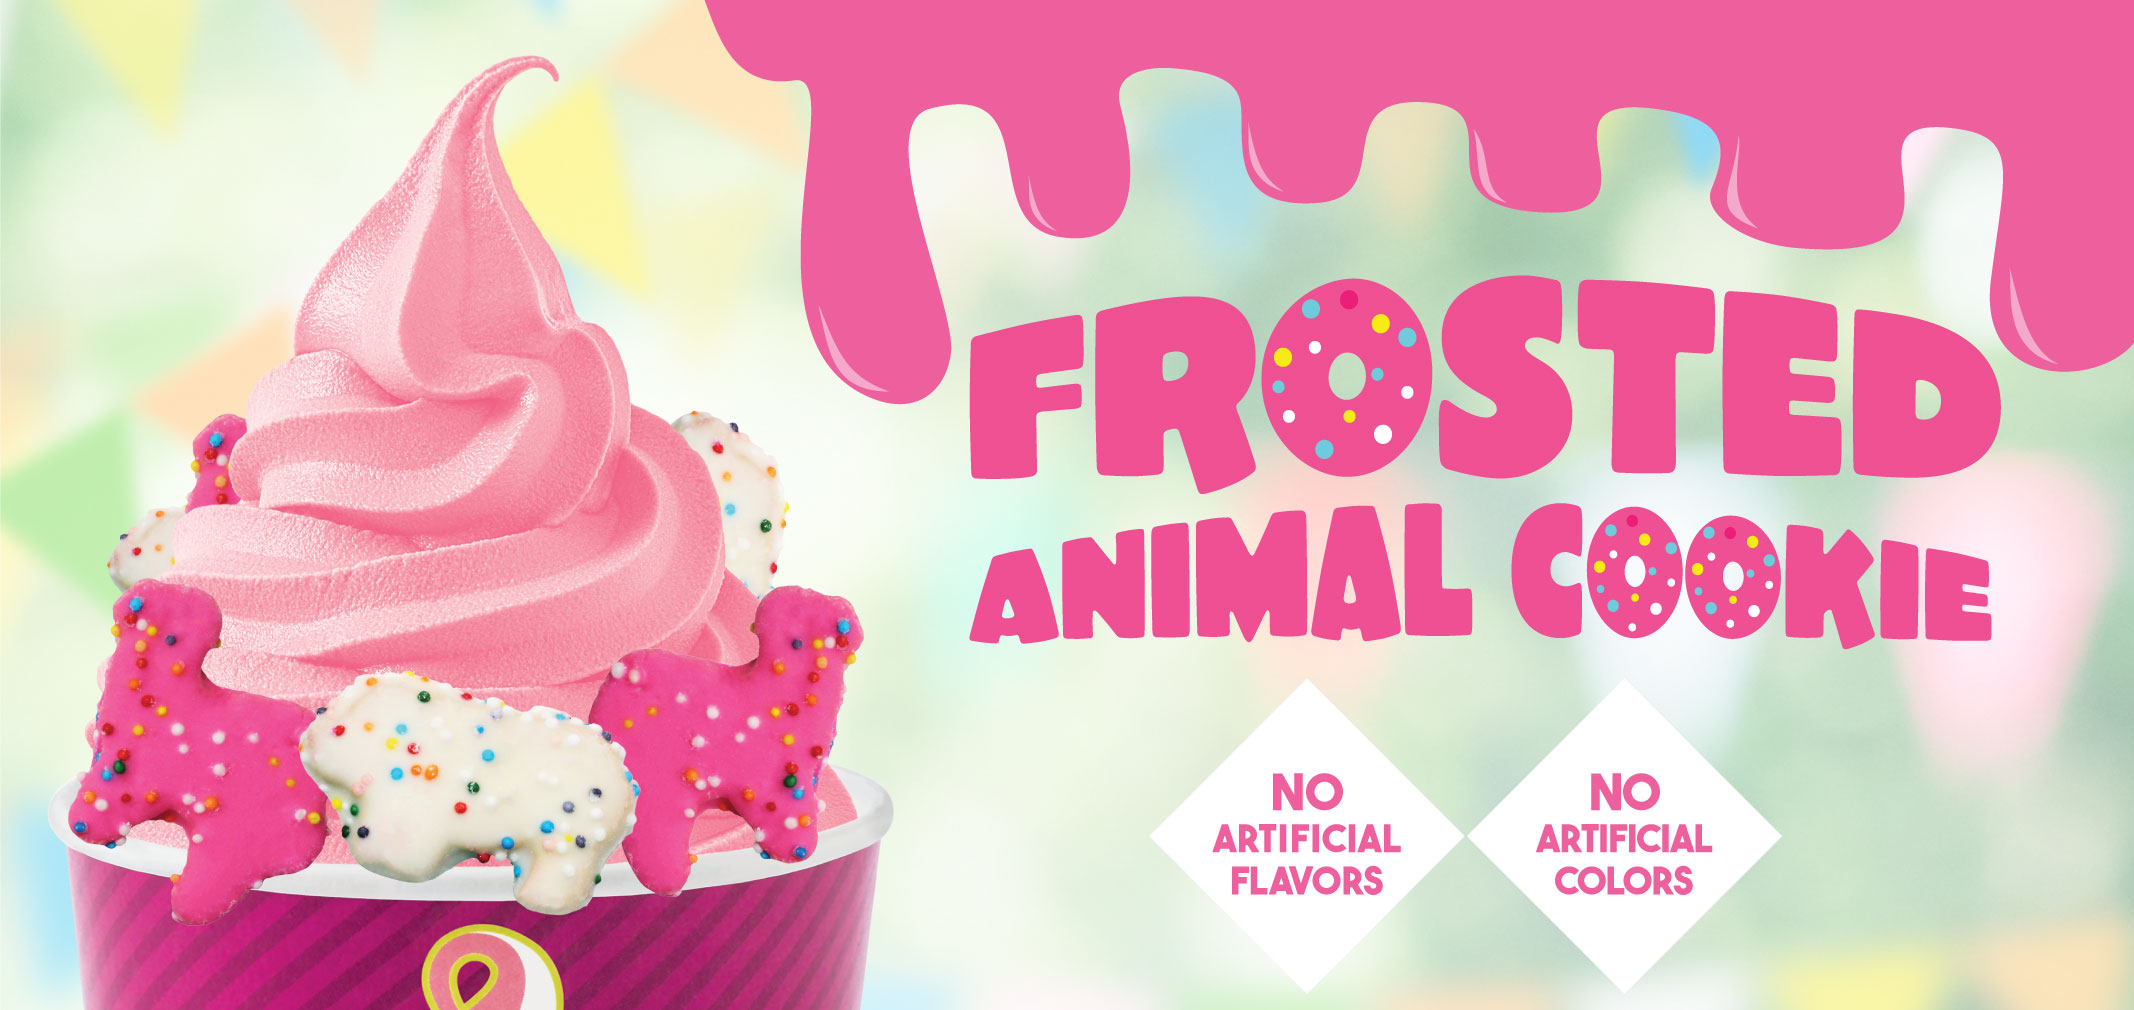 Frosted Animal Cookie label image